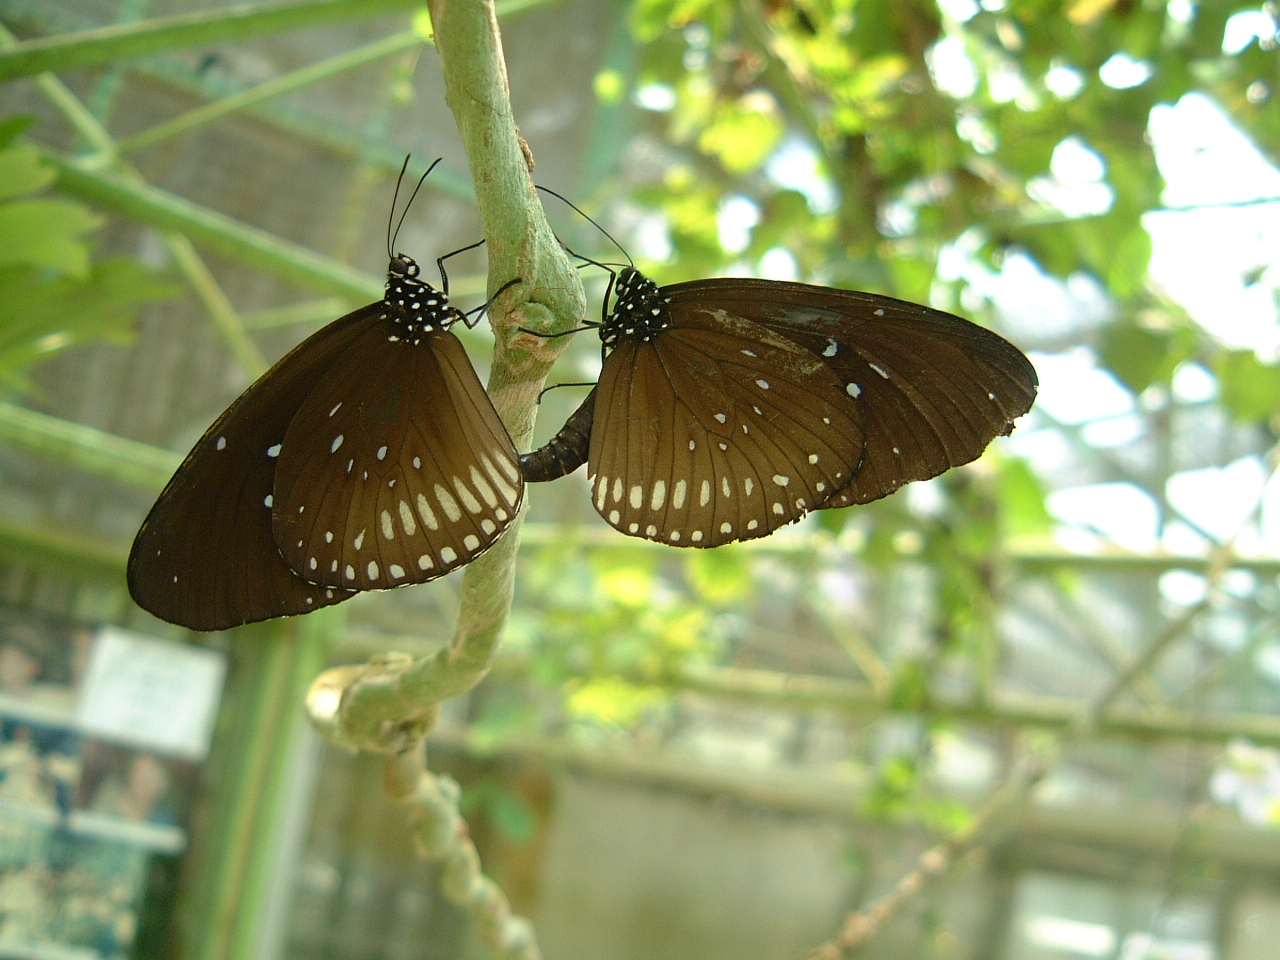 Butterfly Malaysia Penang Butterfly Park 25